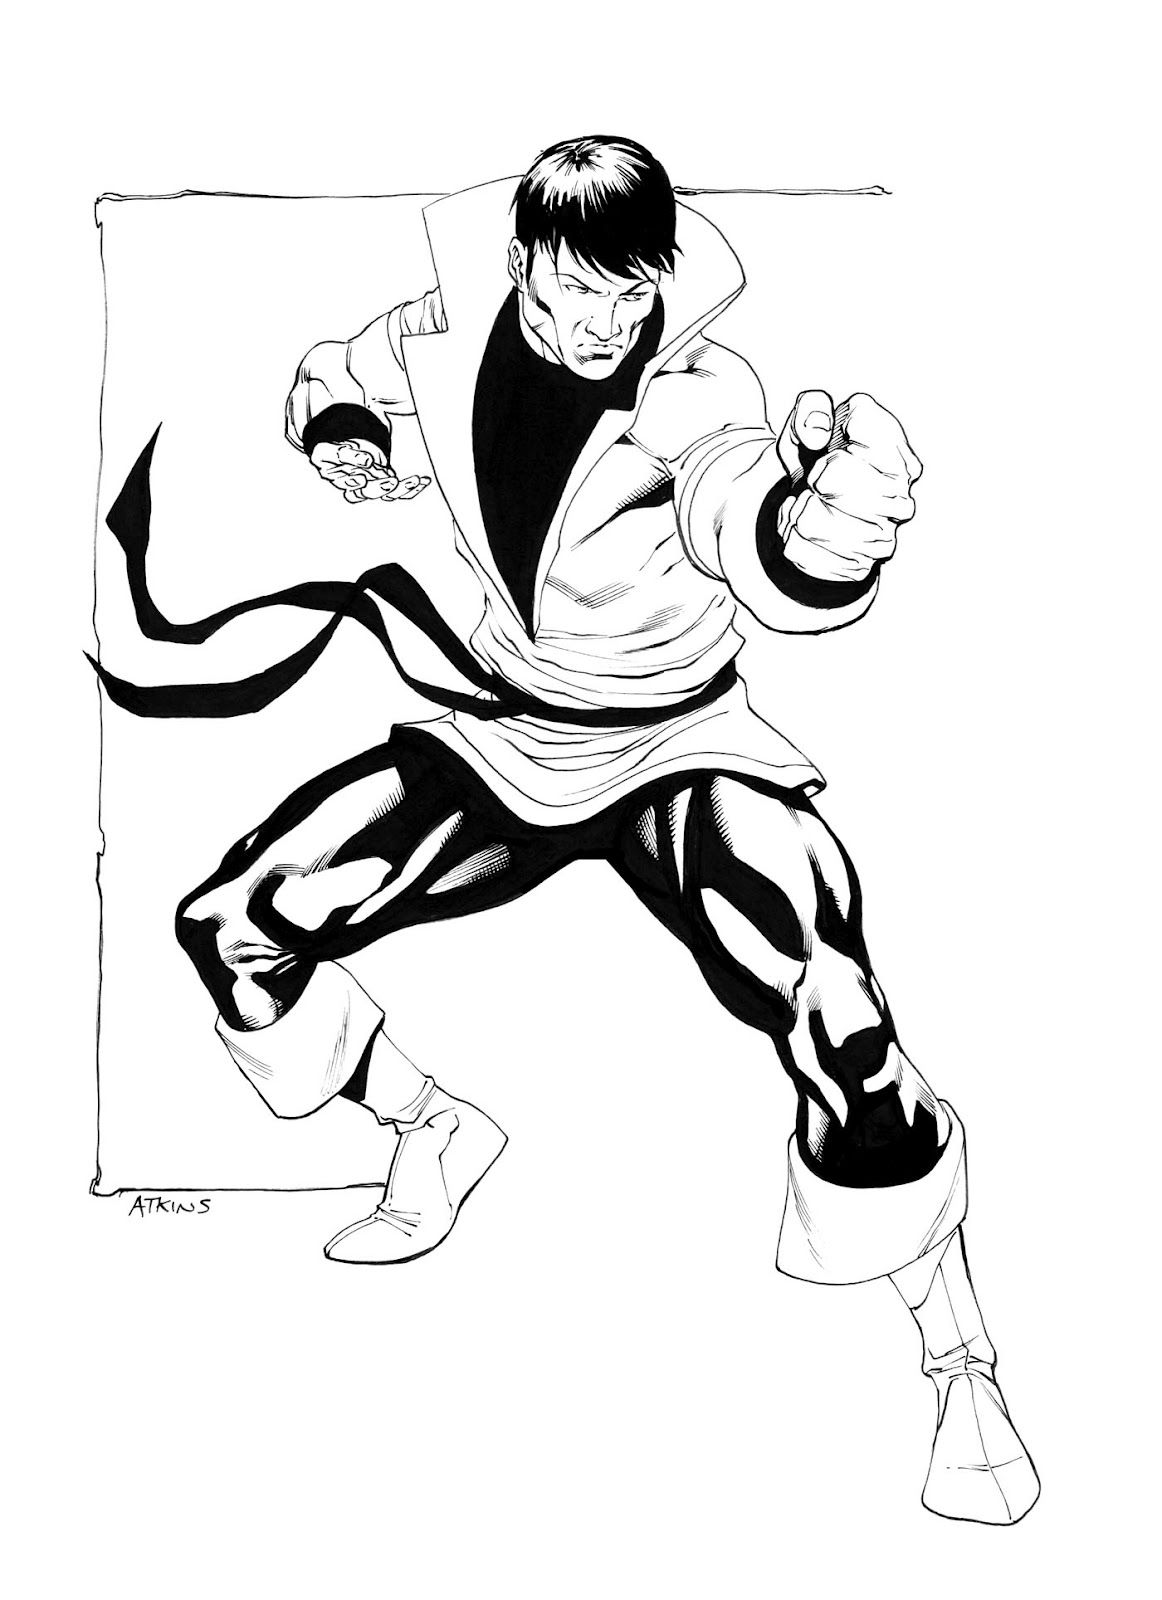 robert atkins art karate kid losh